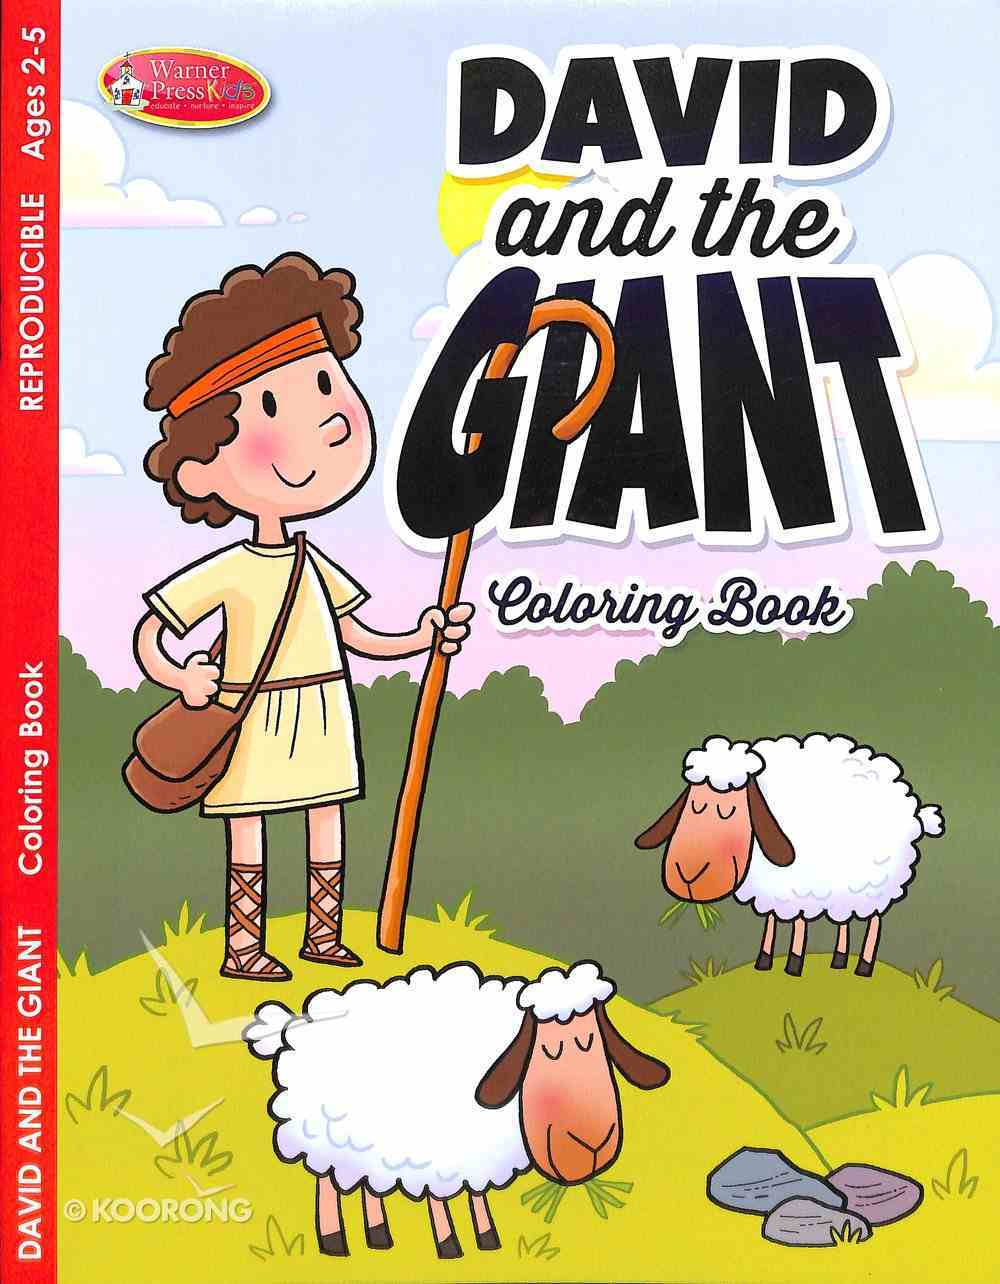 David & the Giant (Ages 2-5, Reproducible) (Warner Press Colouring/activity Under 5's Series) Paperback